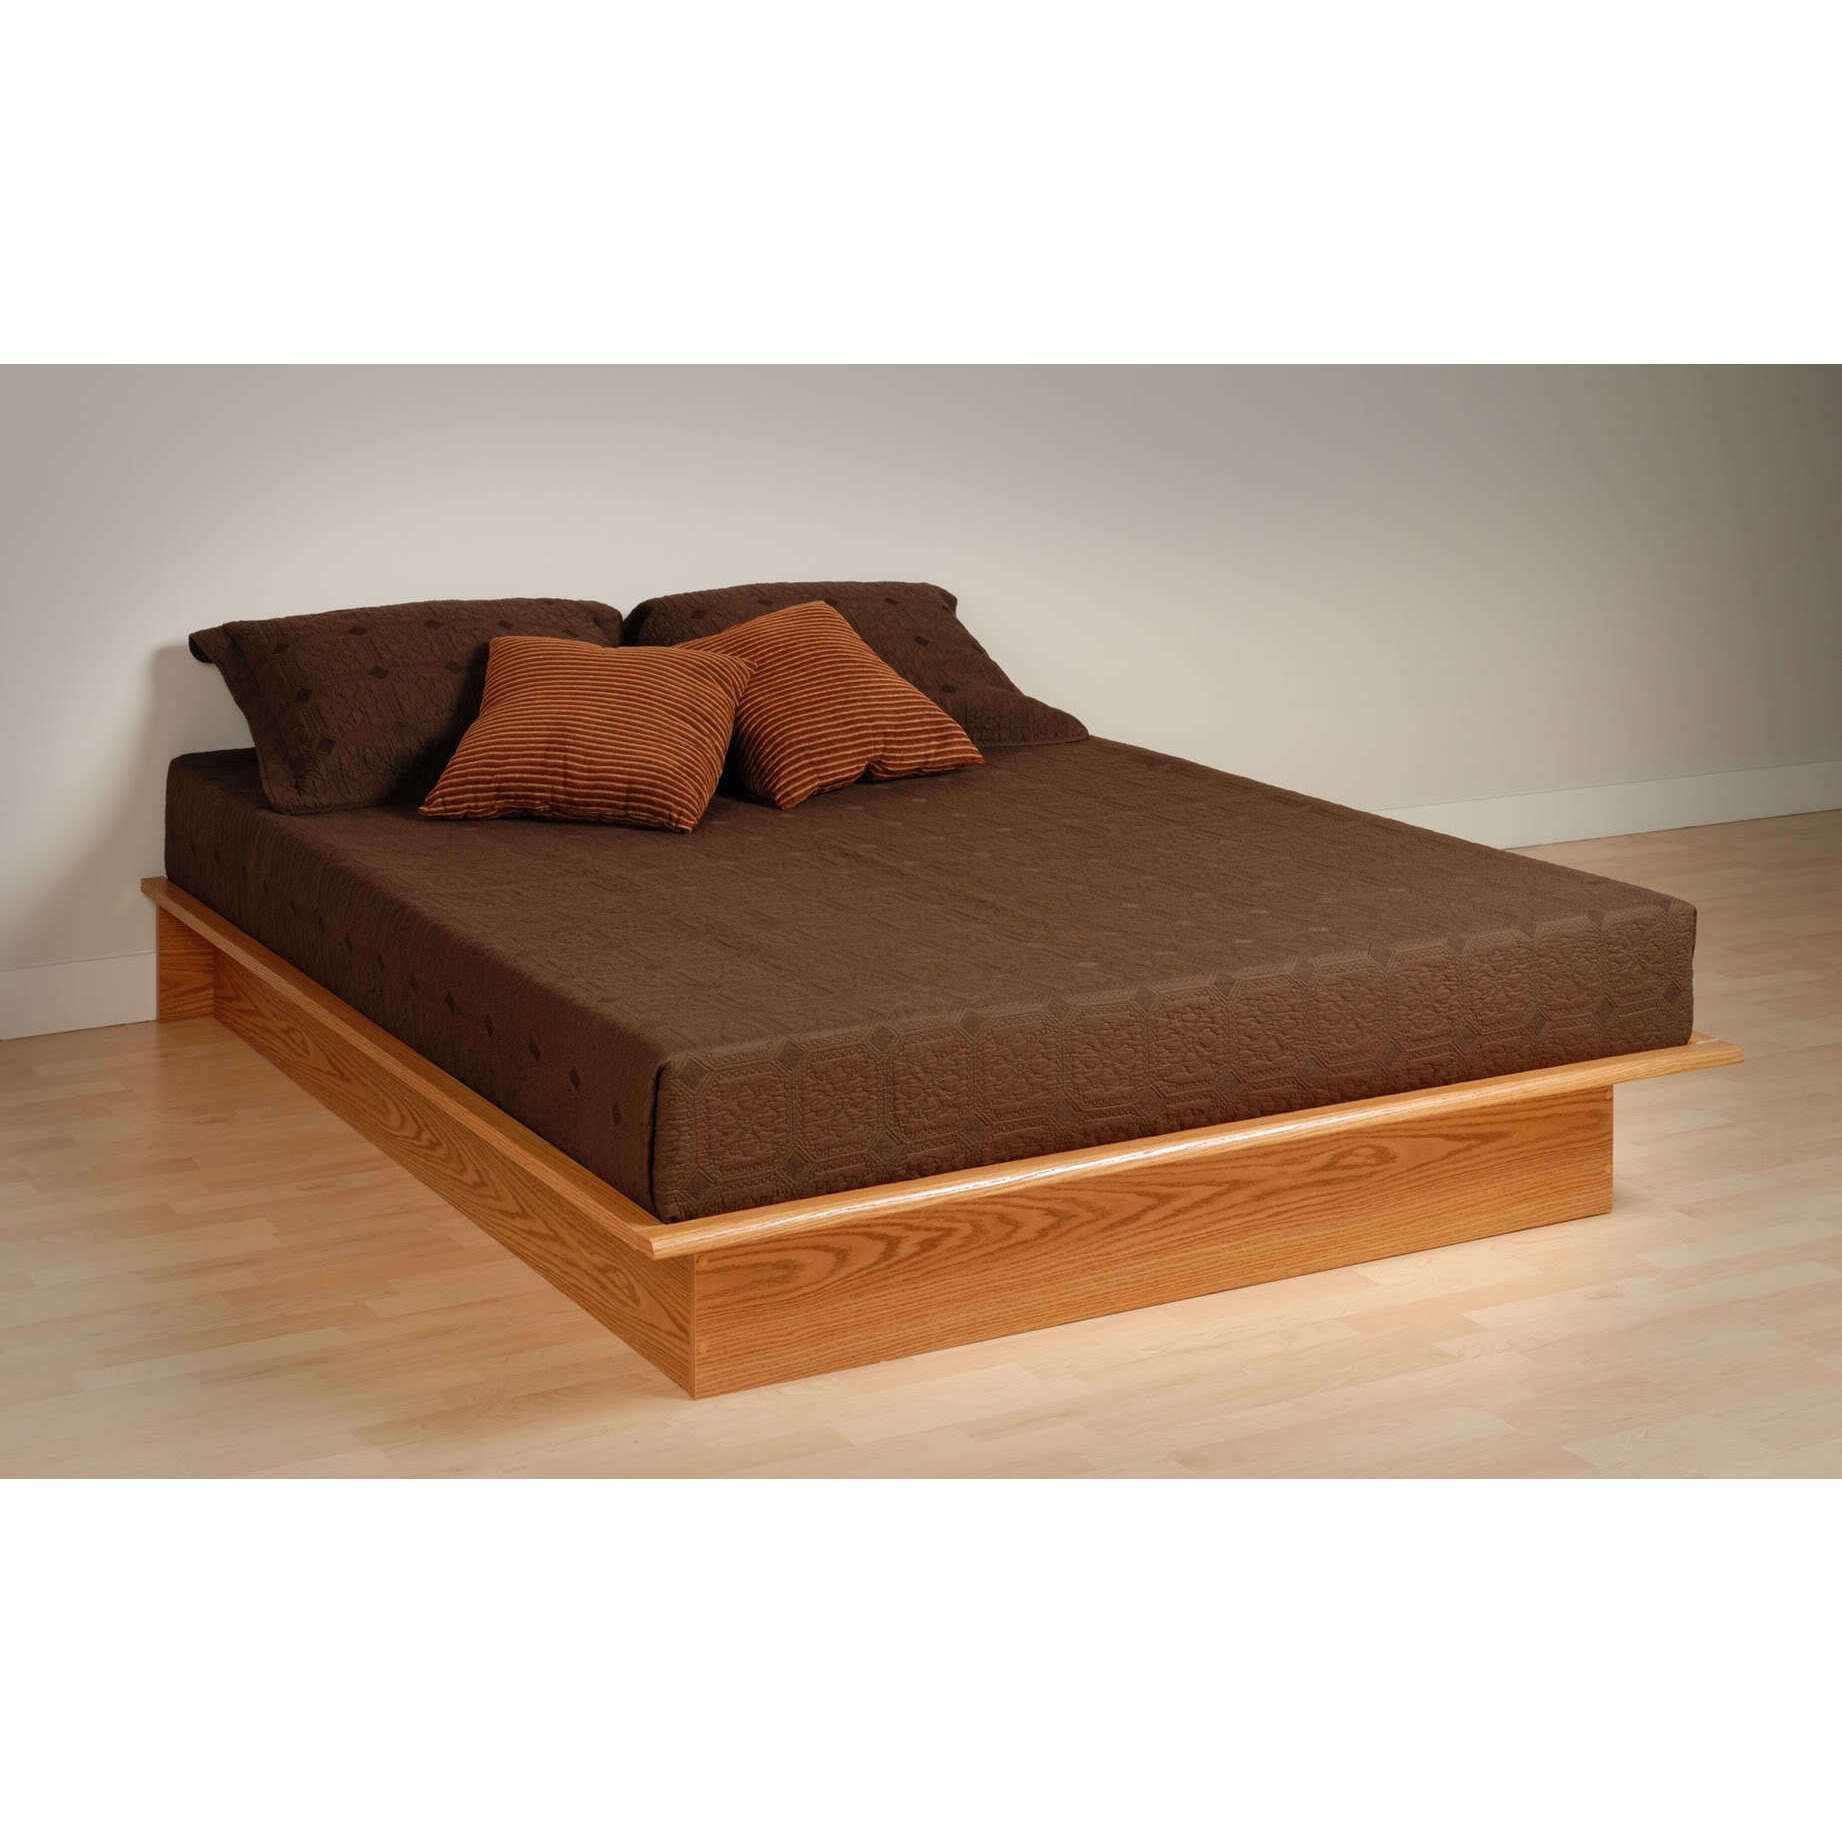 Eliminate the need for a box spring with this Oak Platform